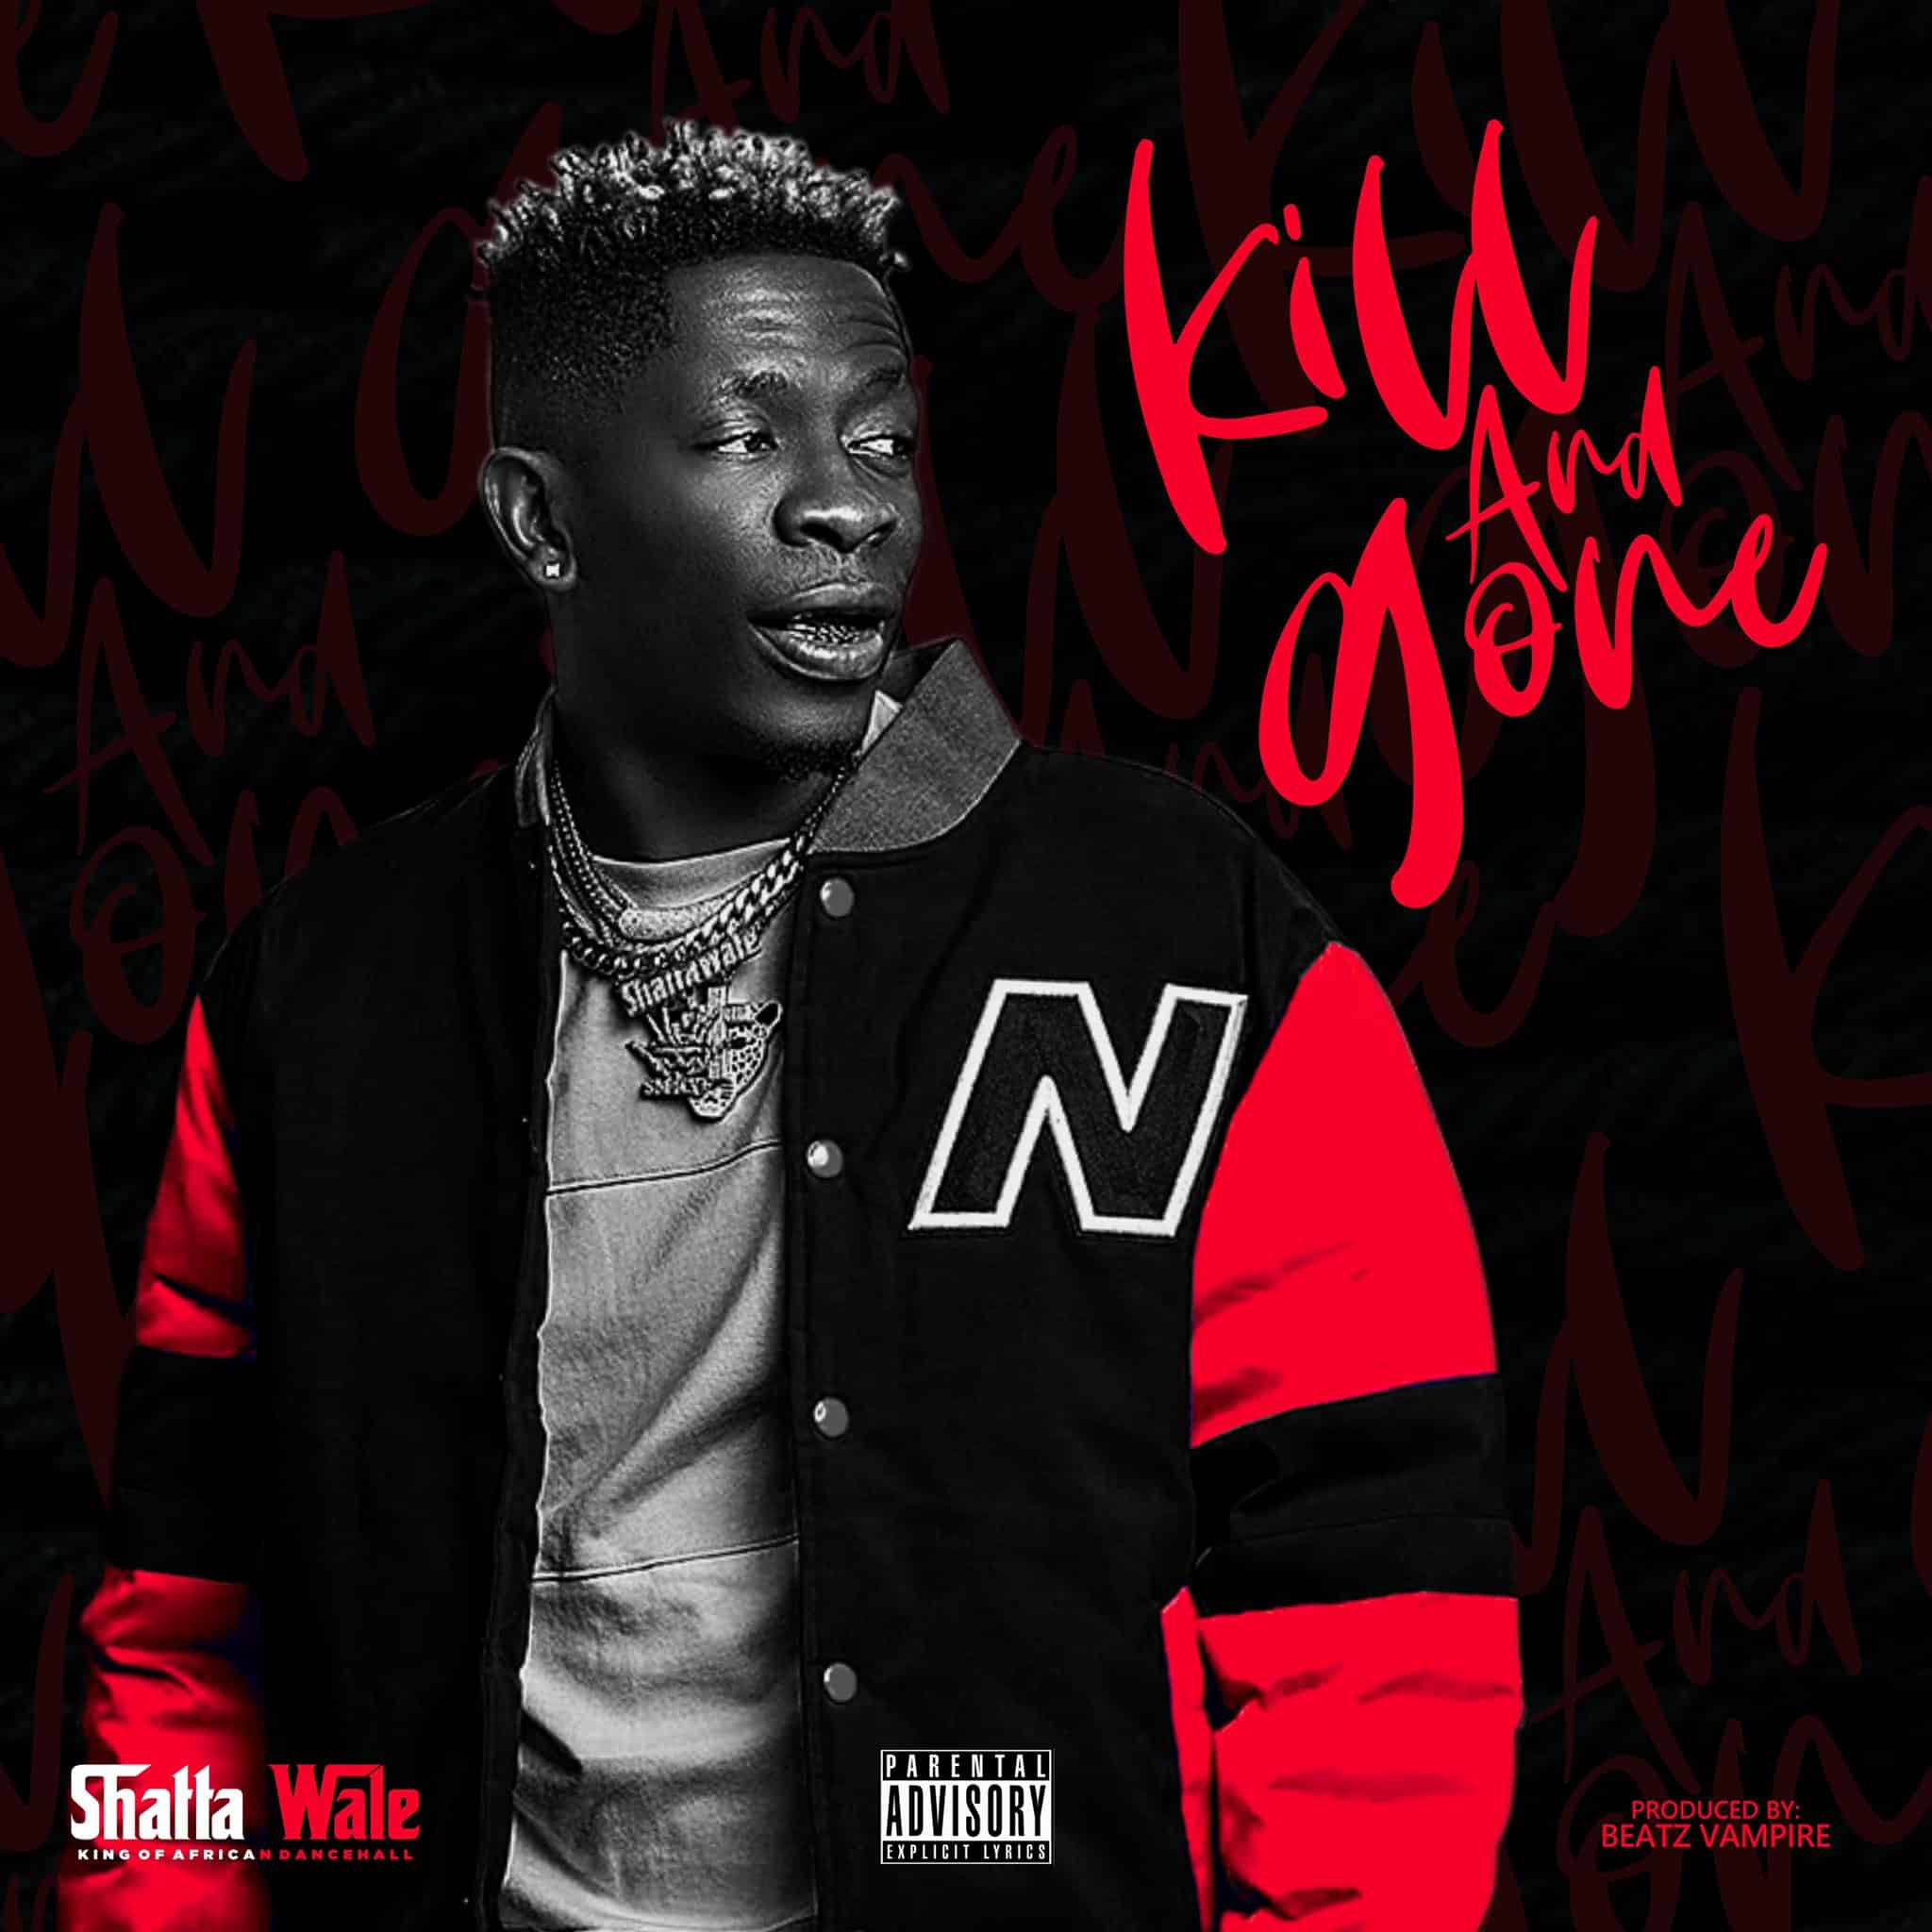 Shatta Wale Kill And Gone